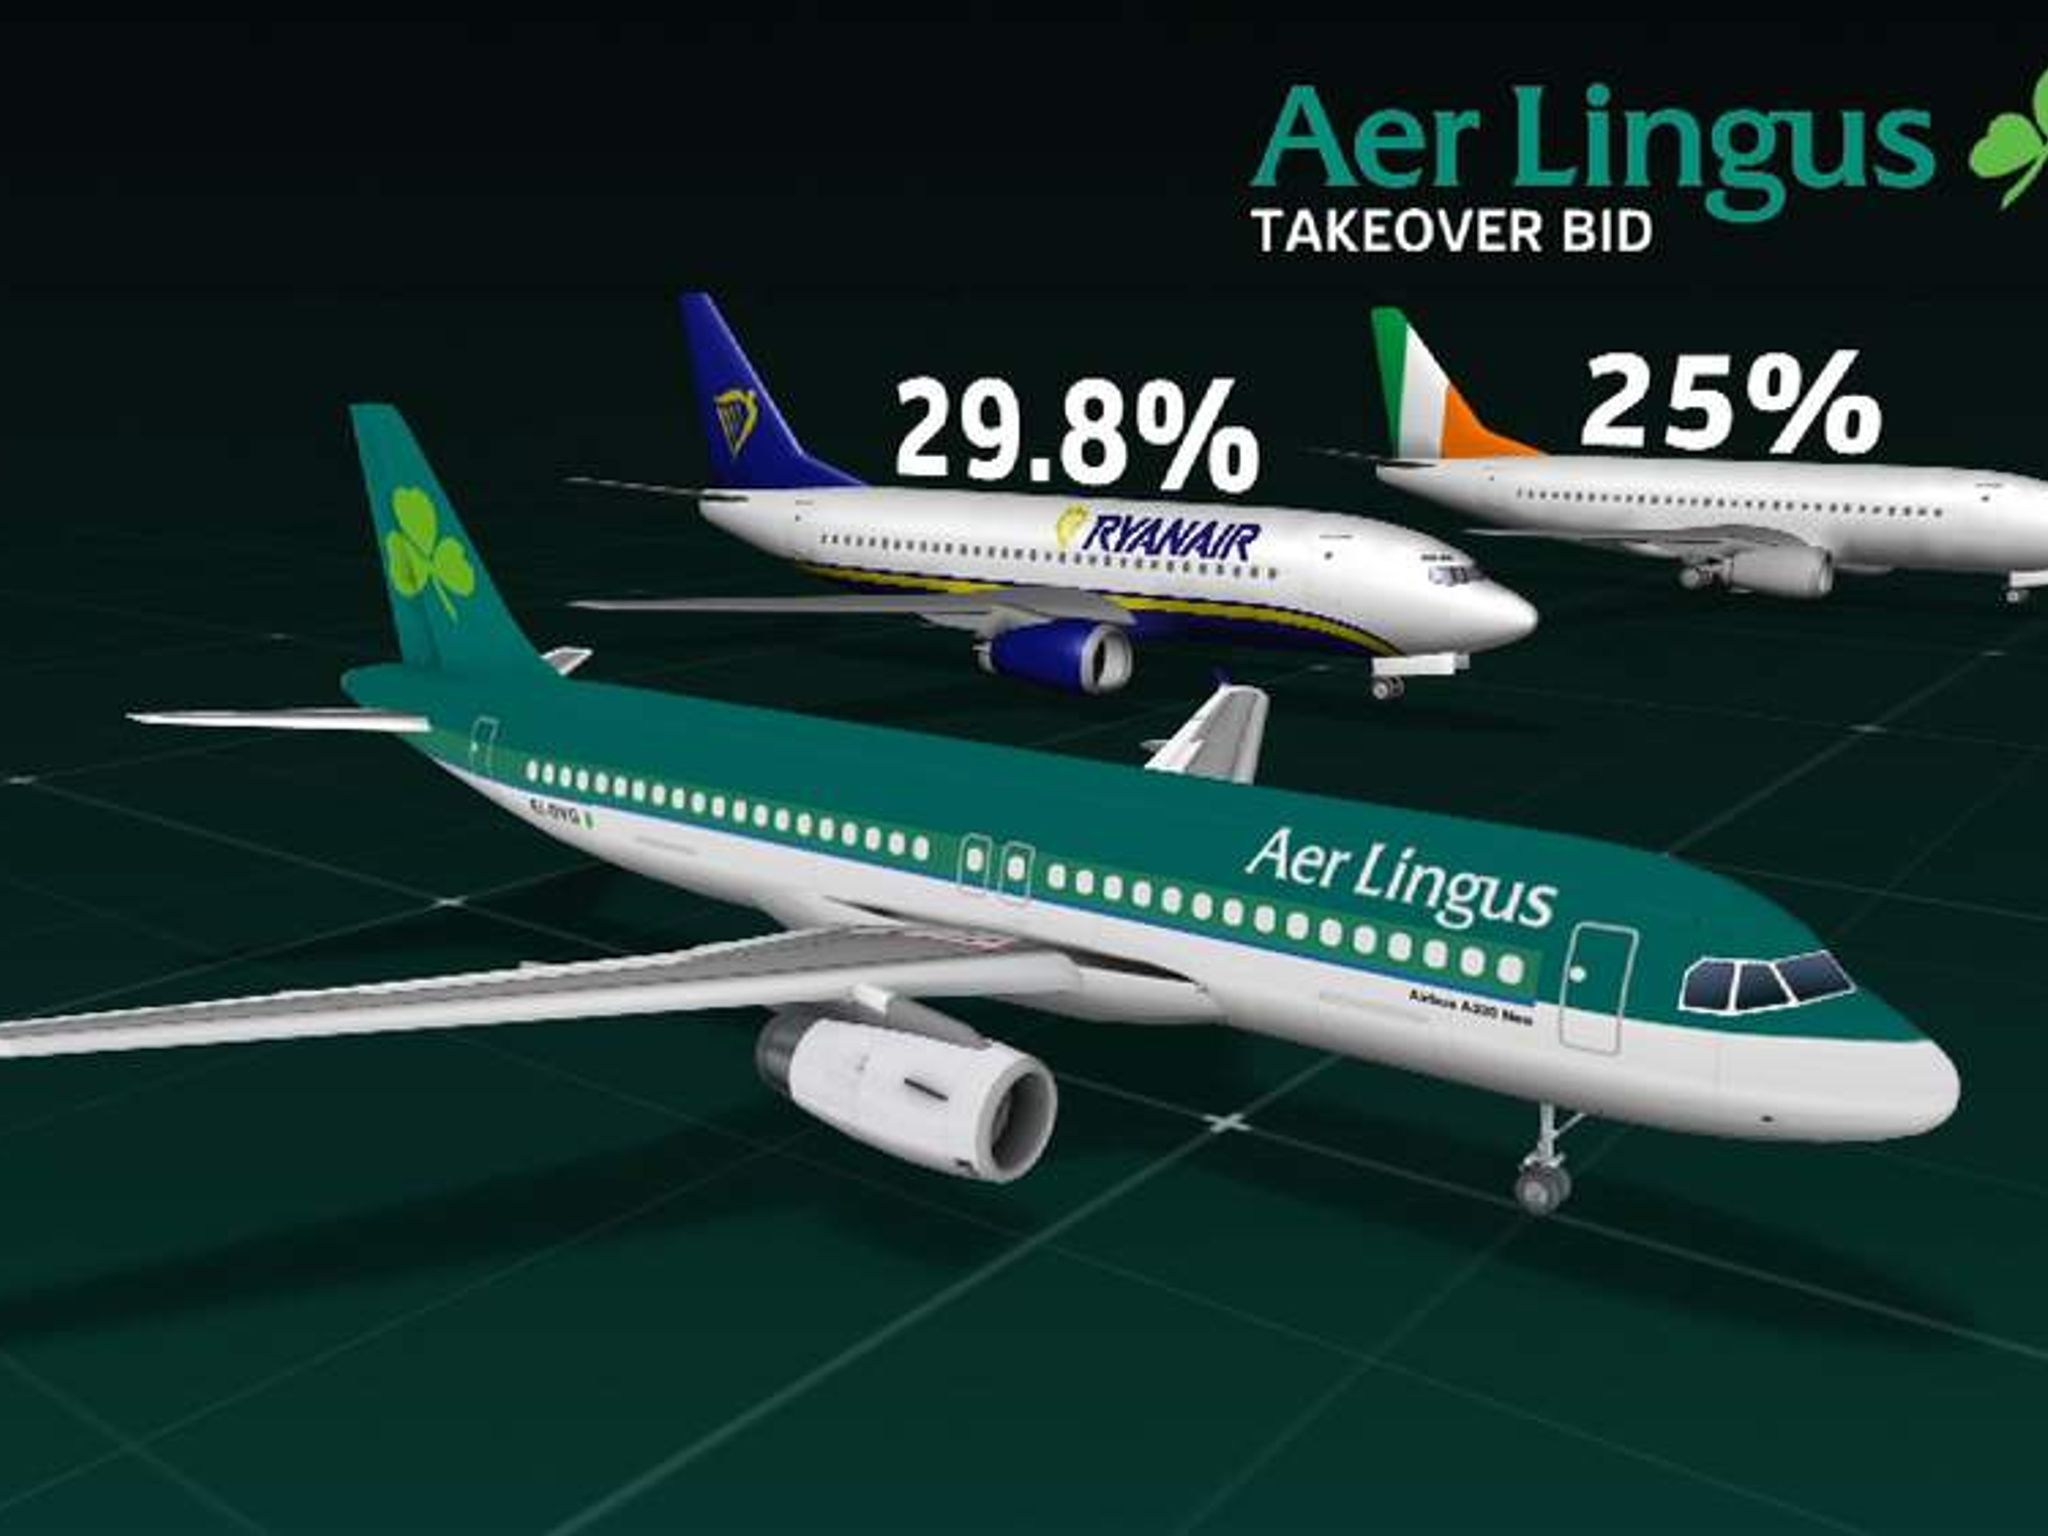 ryanair aer lingus and barriers to